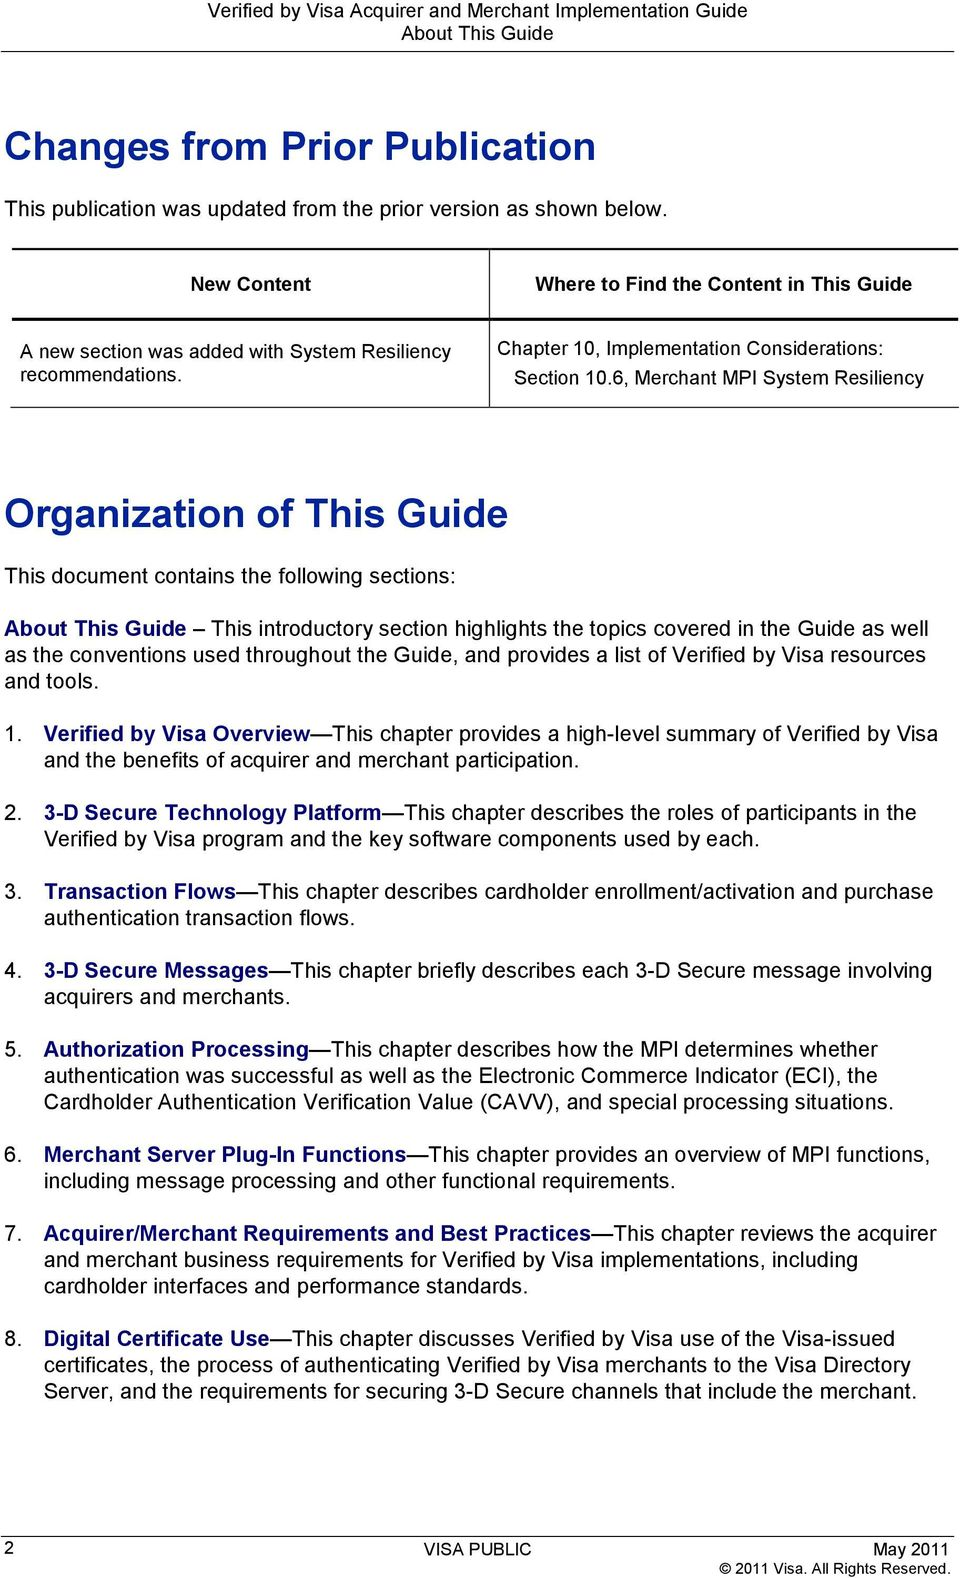 Verified by Visa  Acquirer and Merchant Implementation Guide